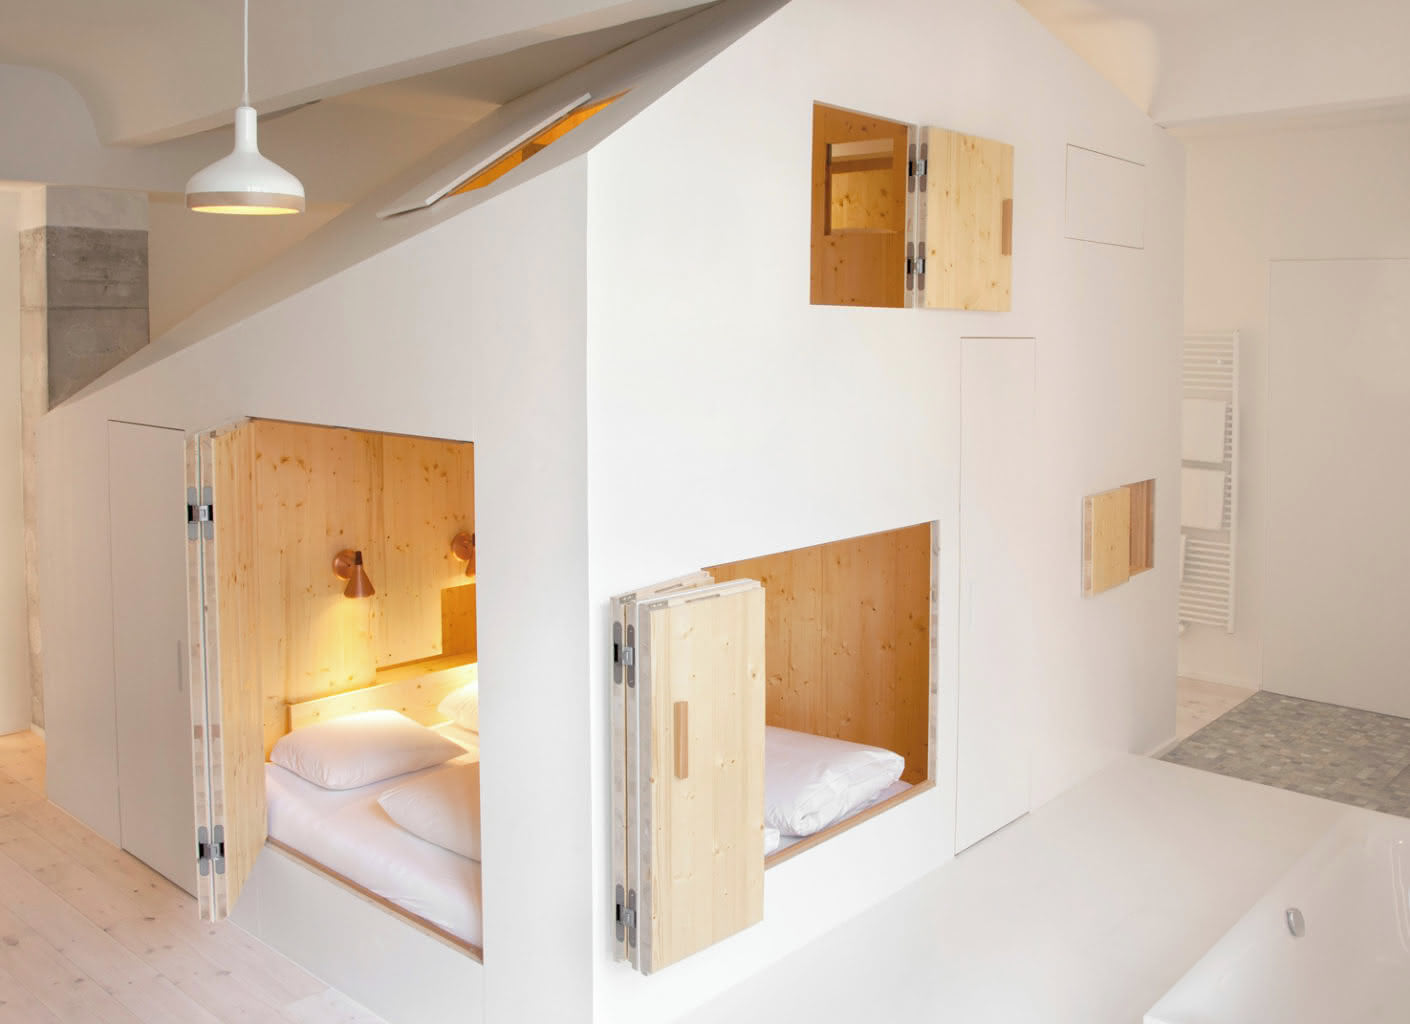 The danish architect Siguard Larsson inserted a two-storey living cube into two rooms of the hotel Michelberger.